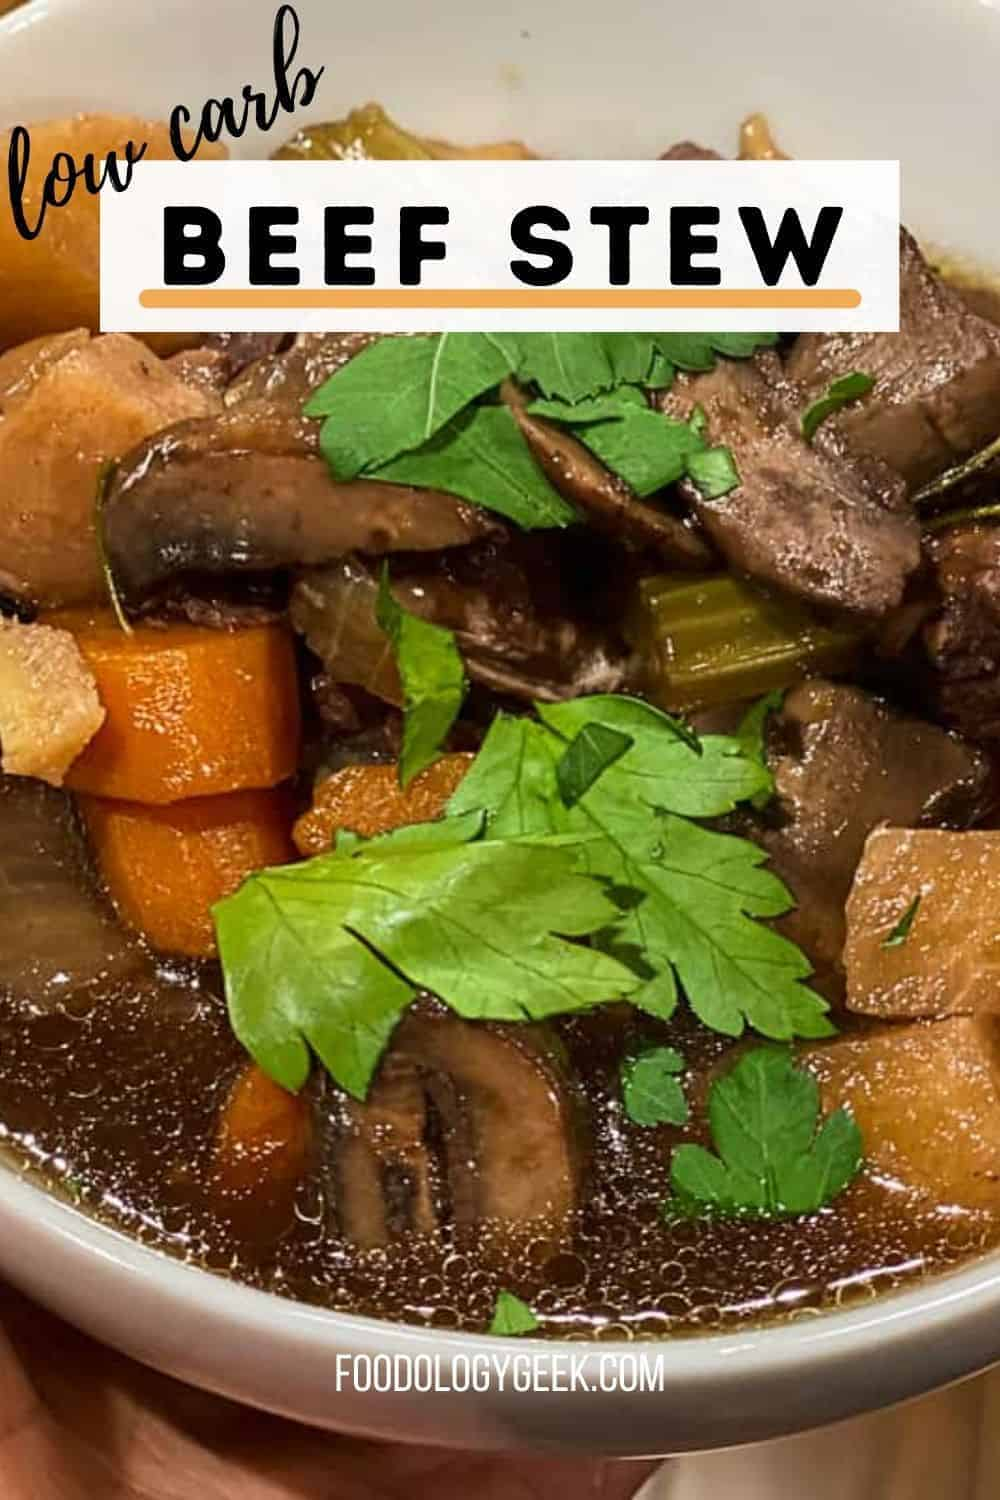 This easy beef stew recipe is low carb and gluten-free. Get all of the instructions for your Instant pot or make this classic beef stew in your dutch oven.